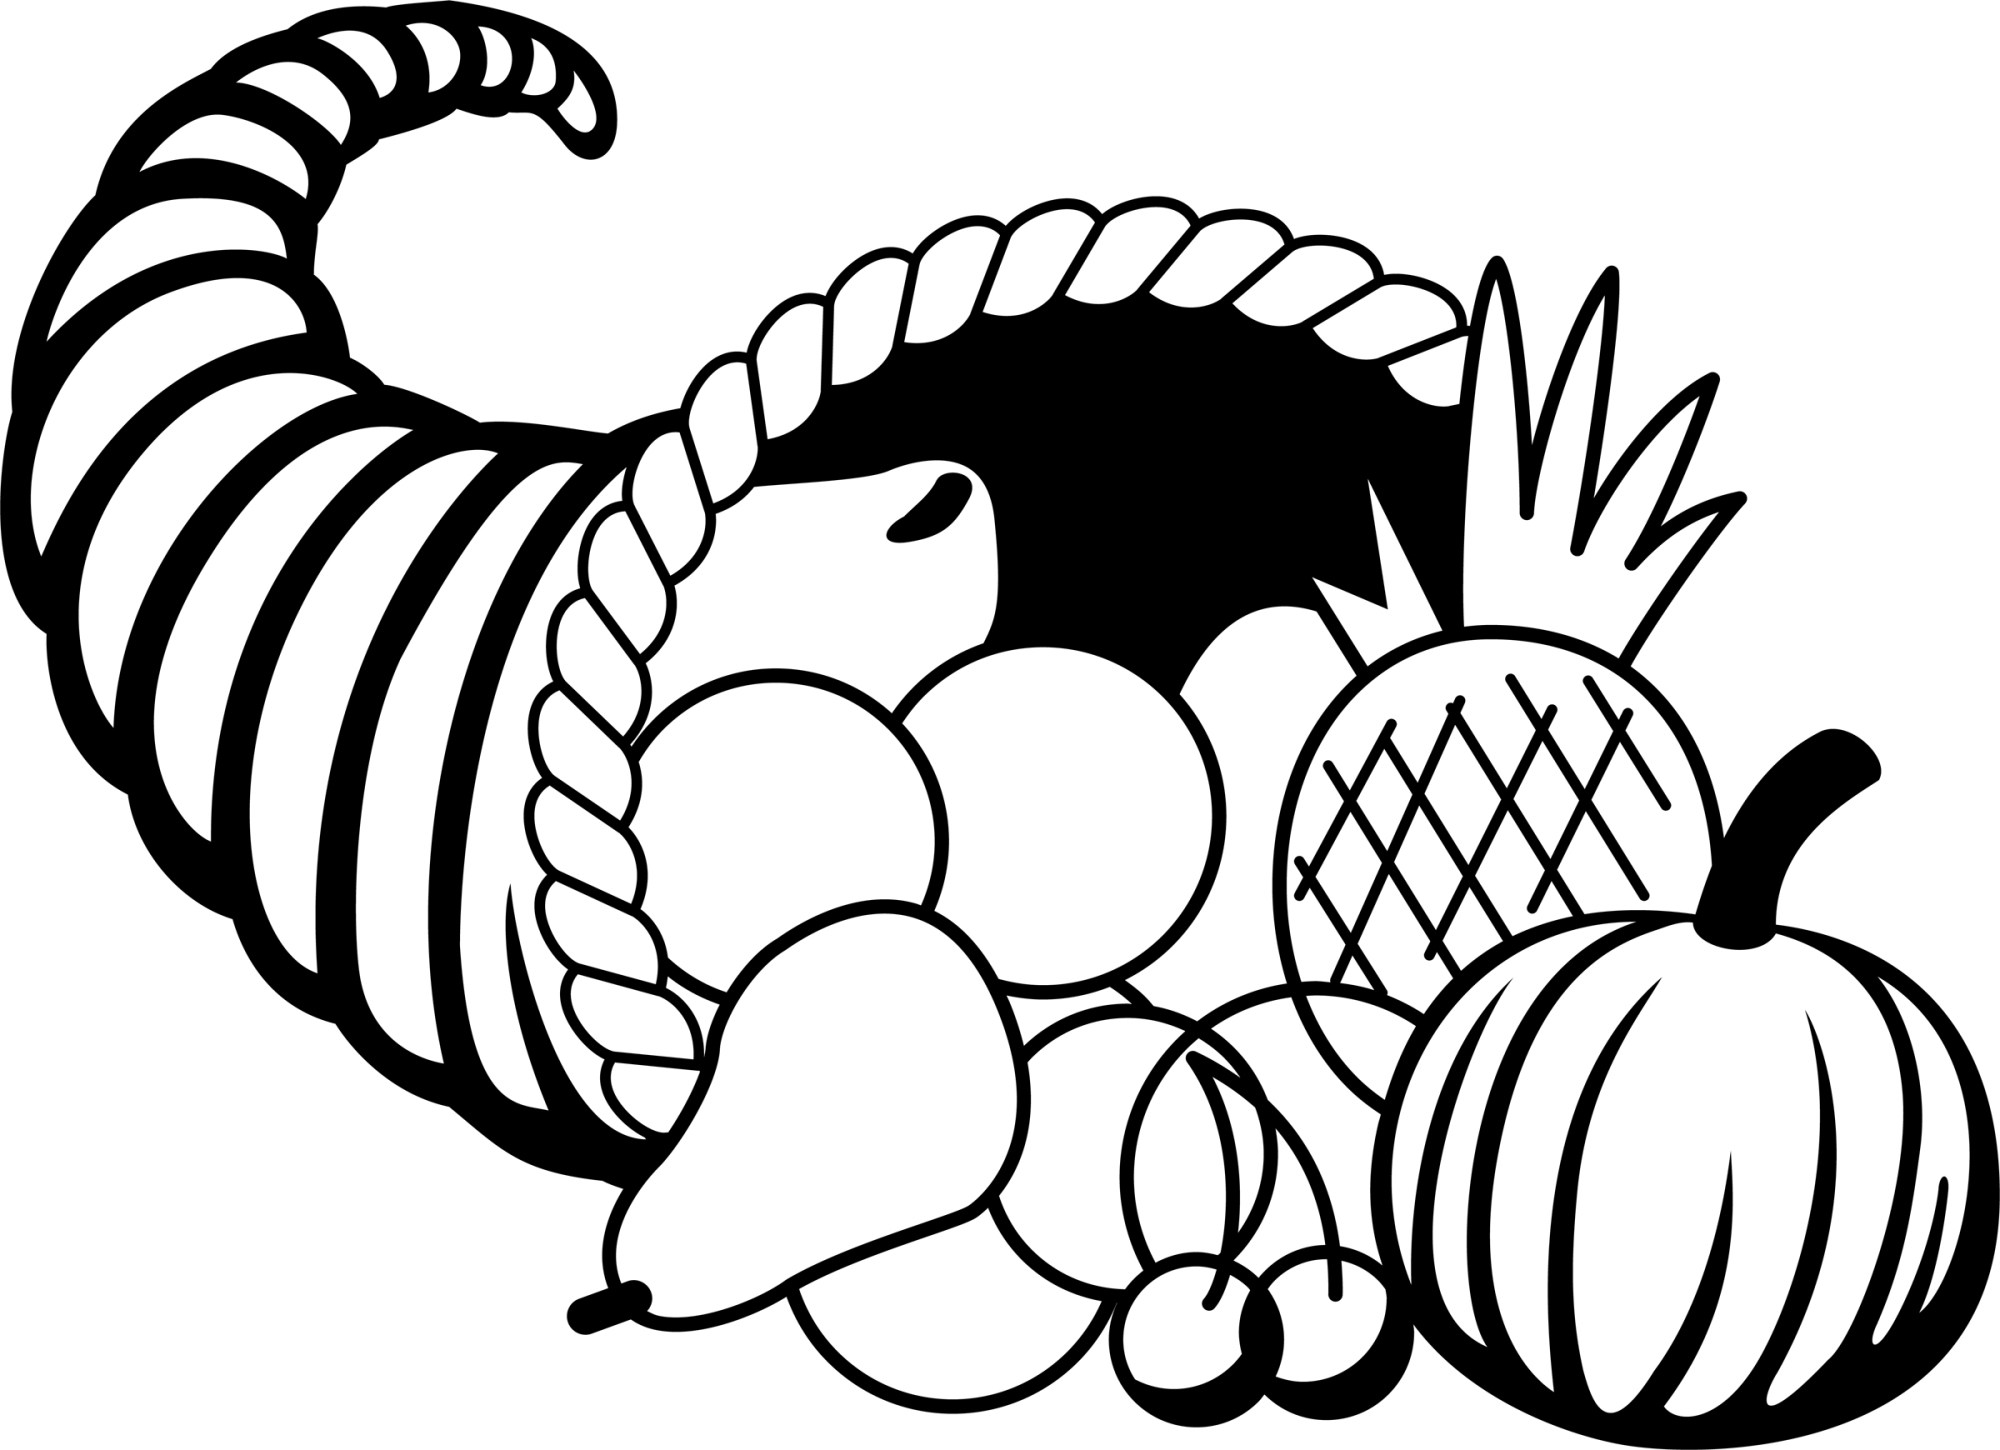 hight resolution of happy thanksgiving turkey clipart black and white